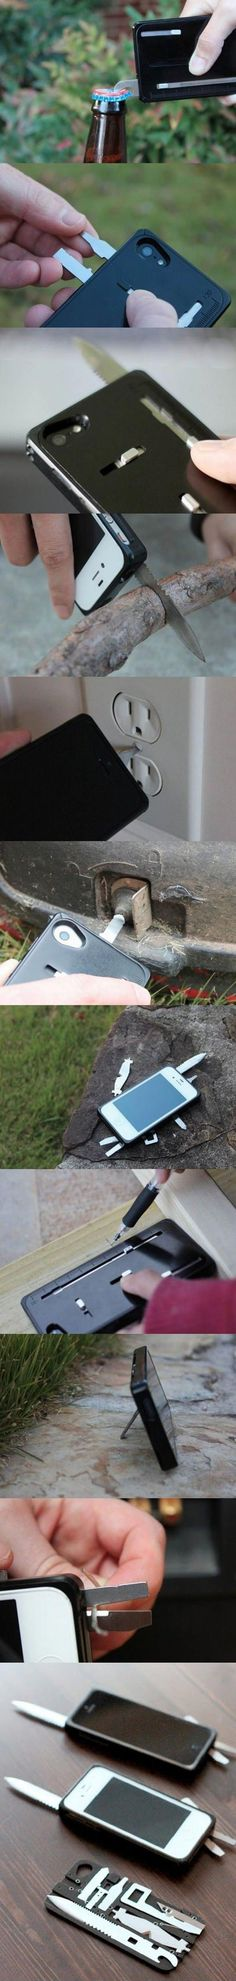 Swiss Army Knife iPhone Case - this is crazy smart! Perfect for #travel!